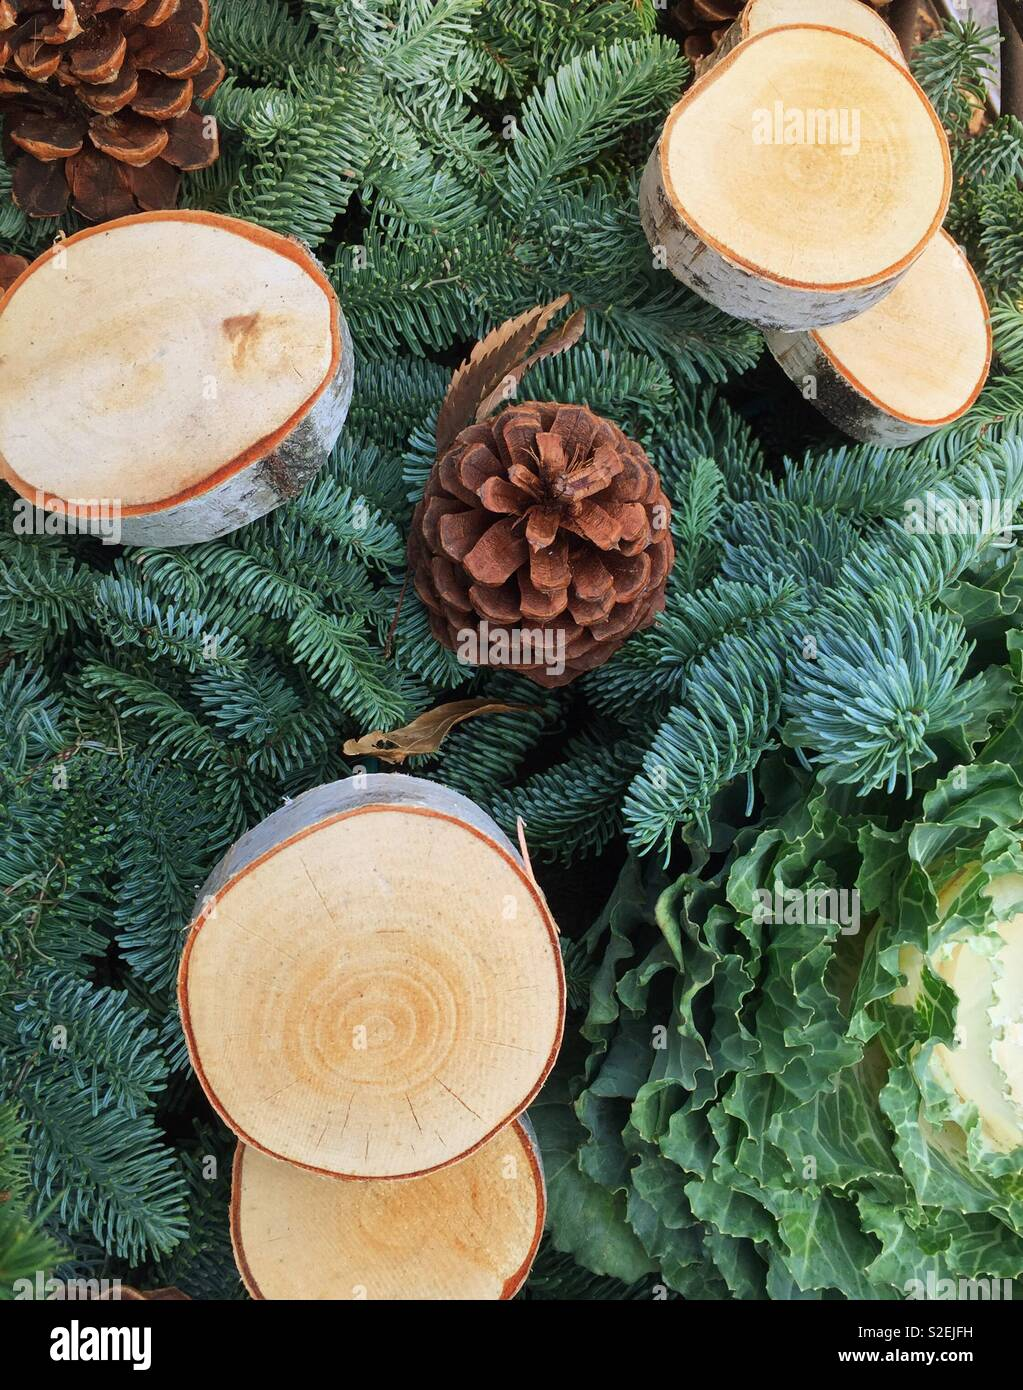 Holiday Display of birch tree slices pinecones and evergreens, United States - Stock Image